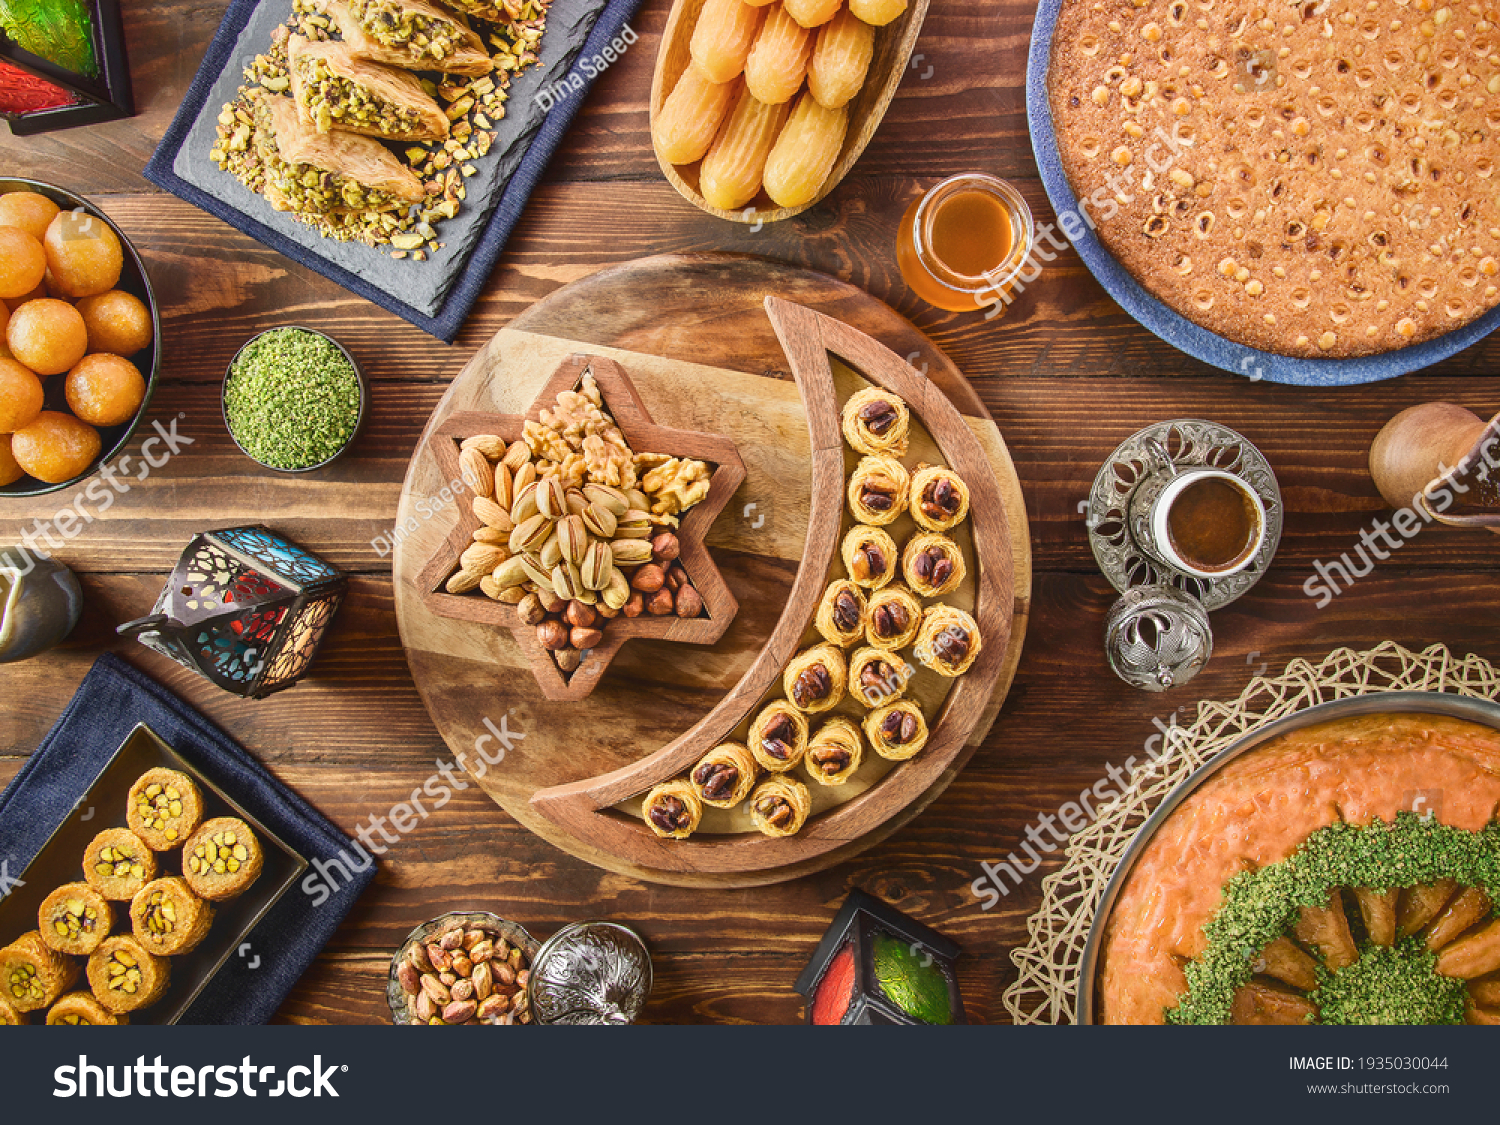 Arabic Cuisine: Middle Eastern desserts. Delicious collection of Ramadan traditional desserts. Served with tasty nuts, Arabic coffee, honey syrup and sugar syrup .Top view with close up. #1935030044